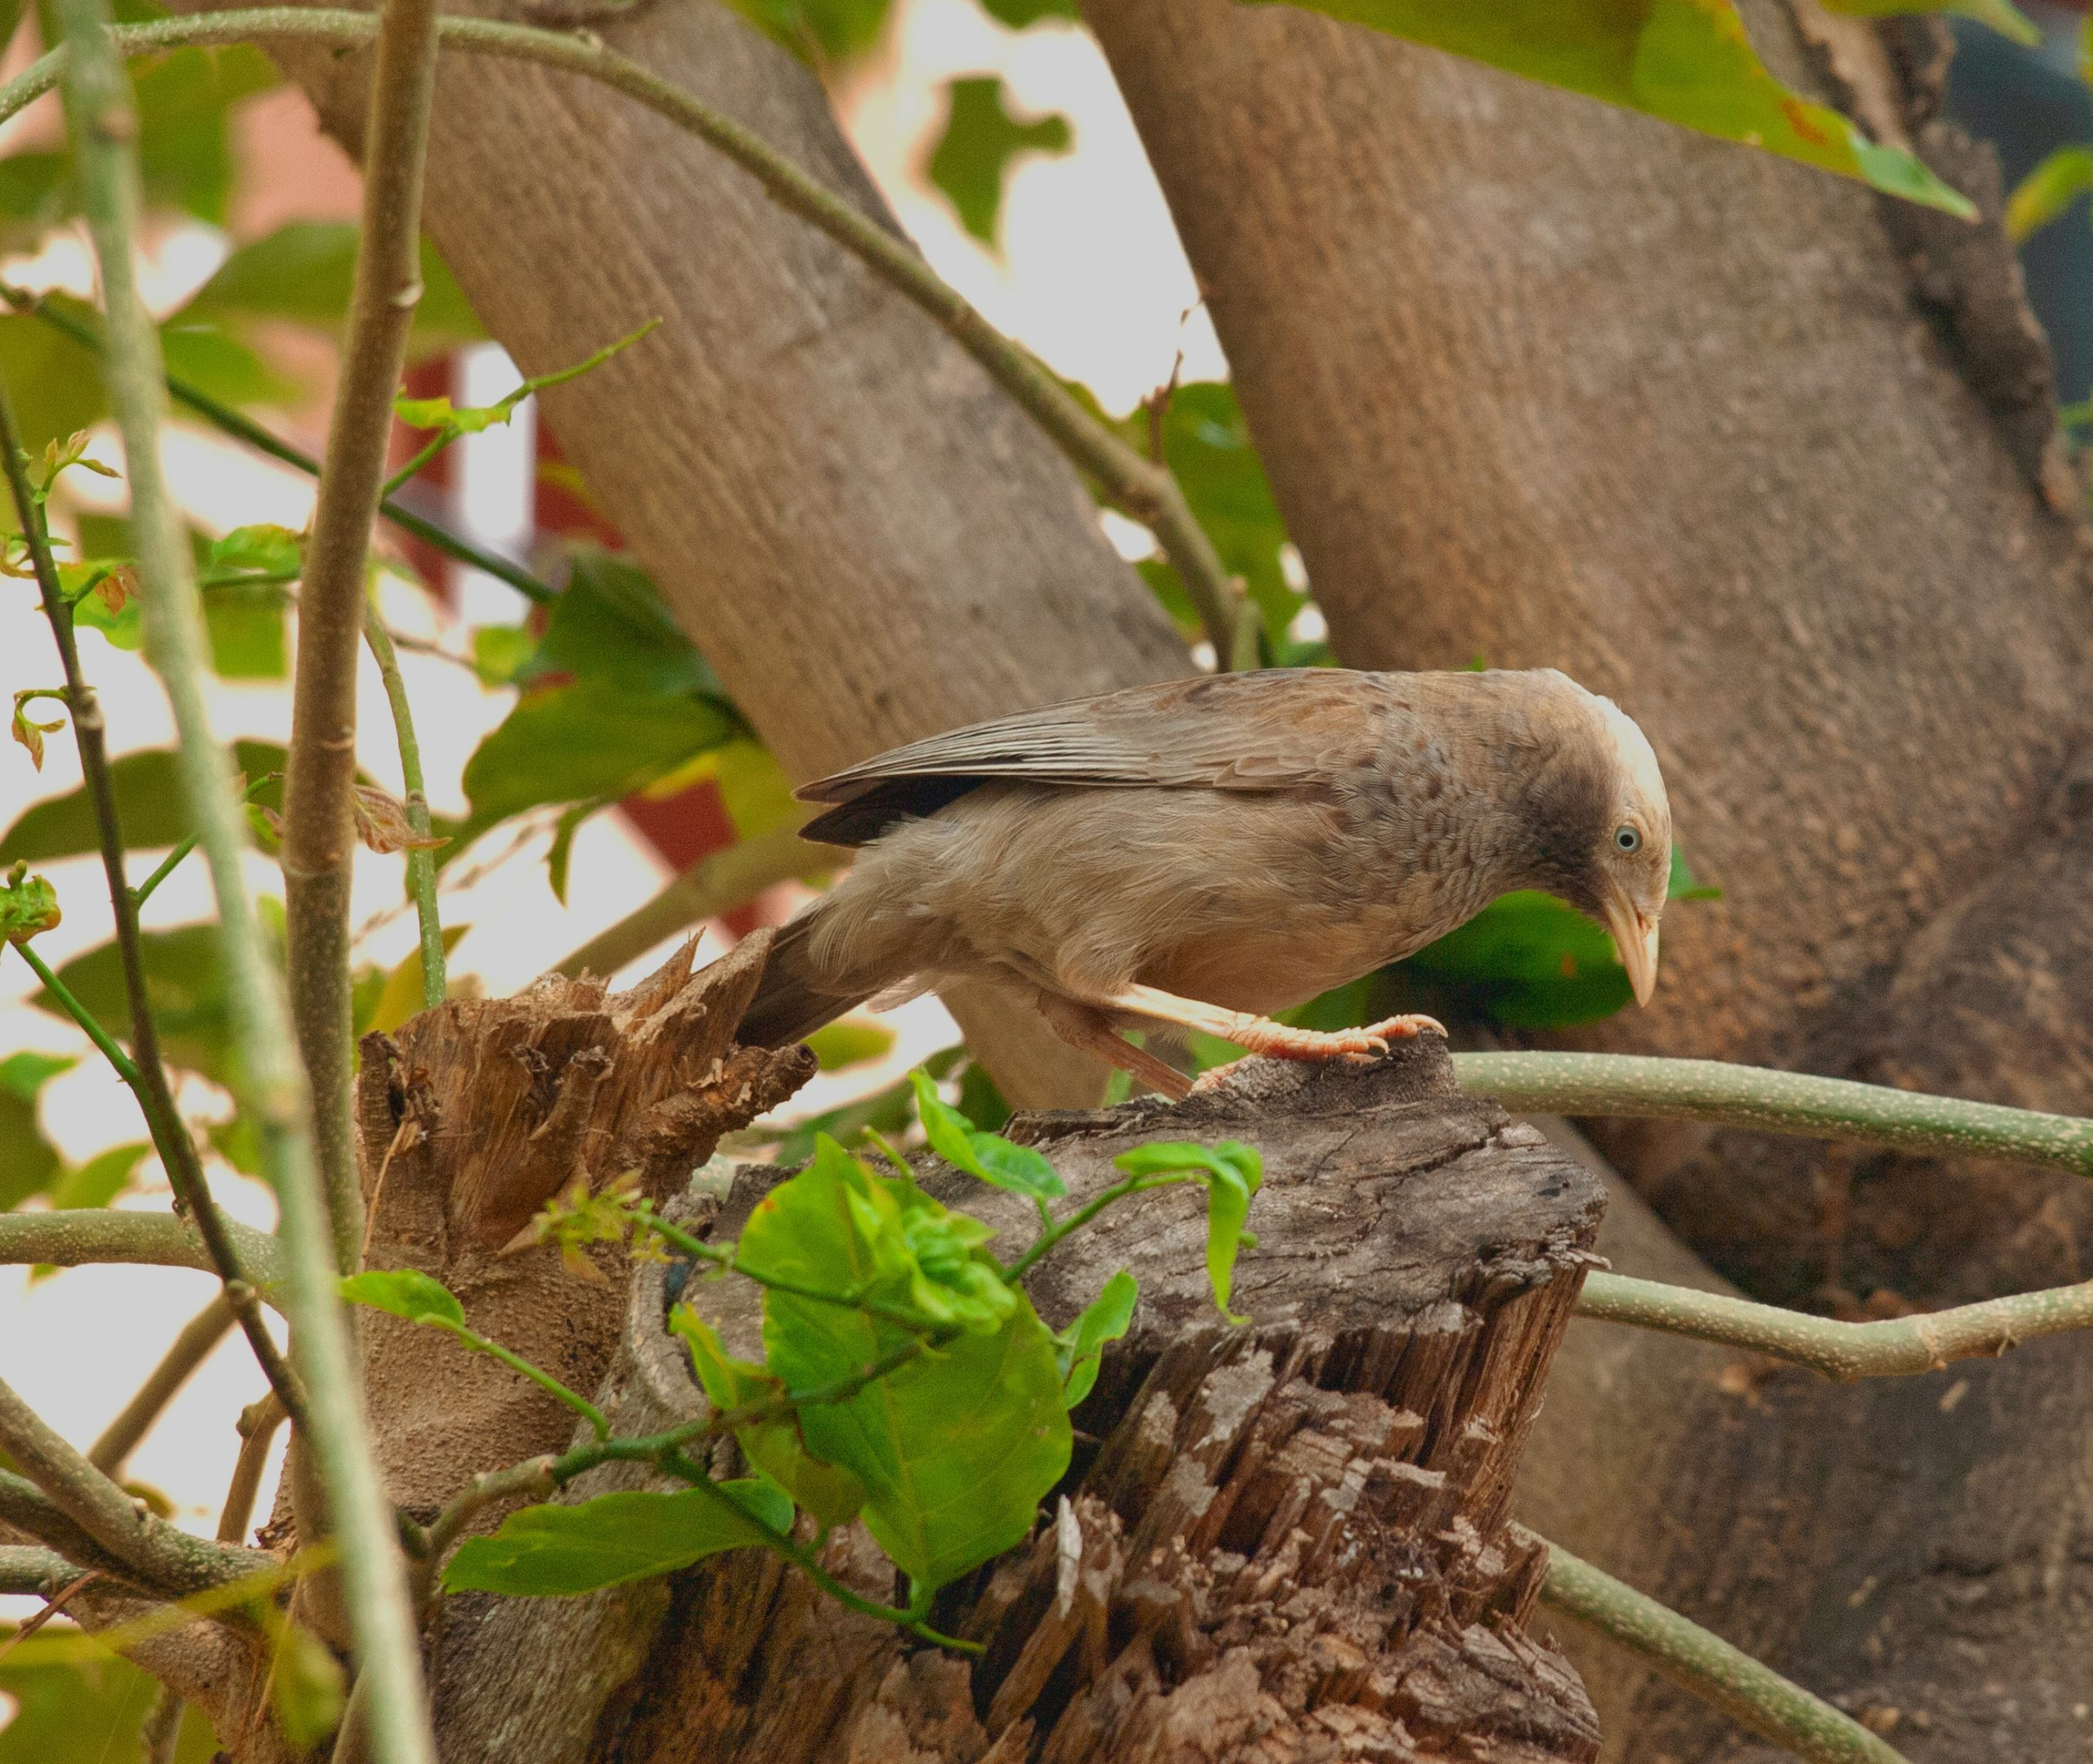 Jungle babbler on a tree